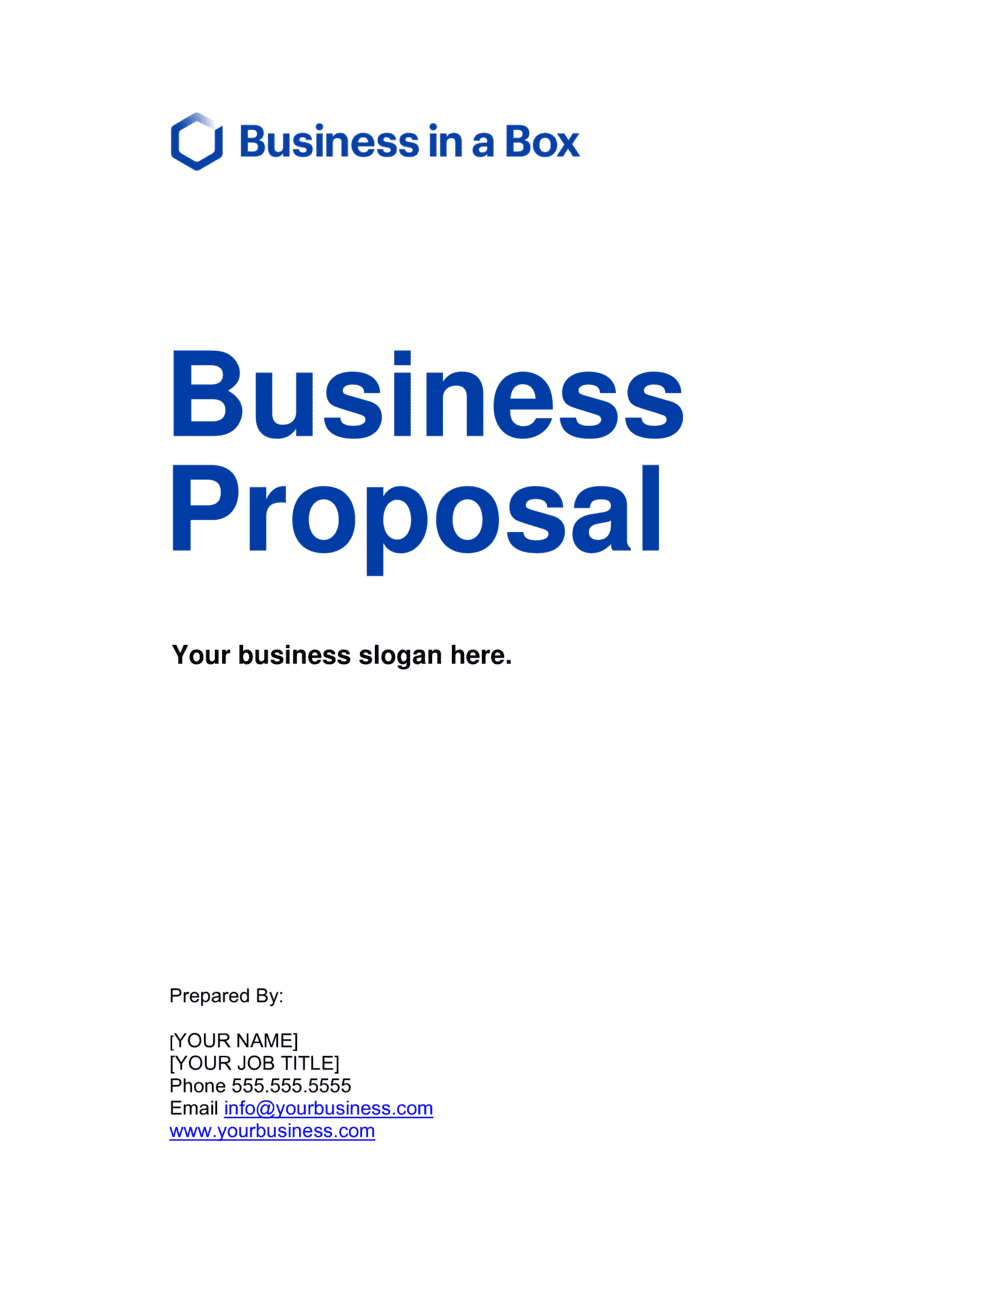 Business-in-a-Box's Business Proposal Template